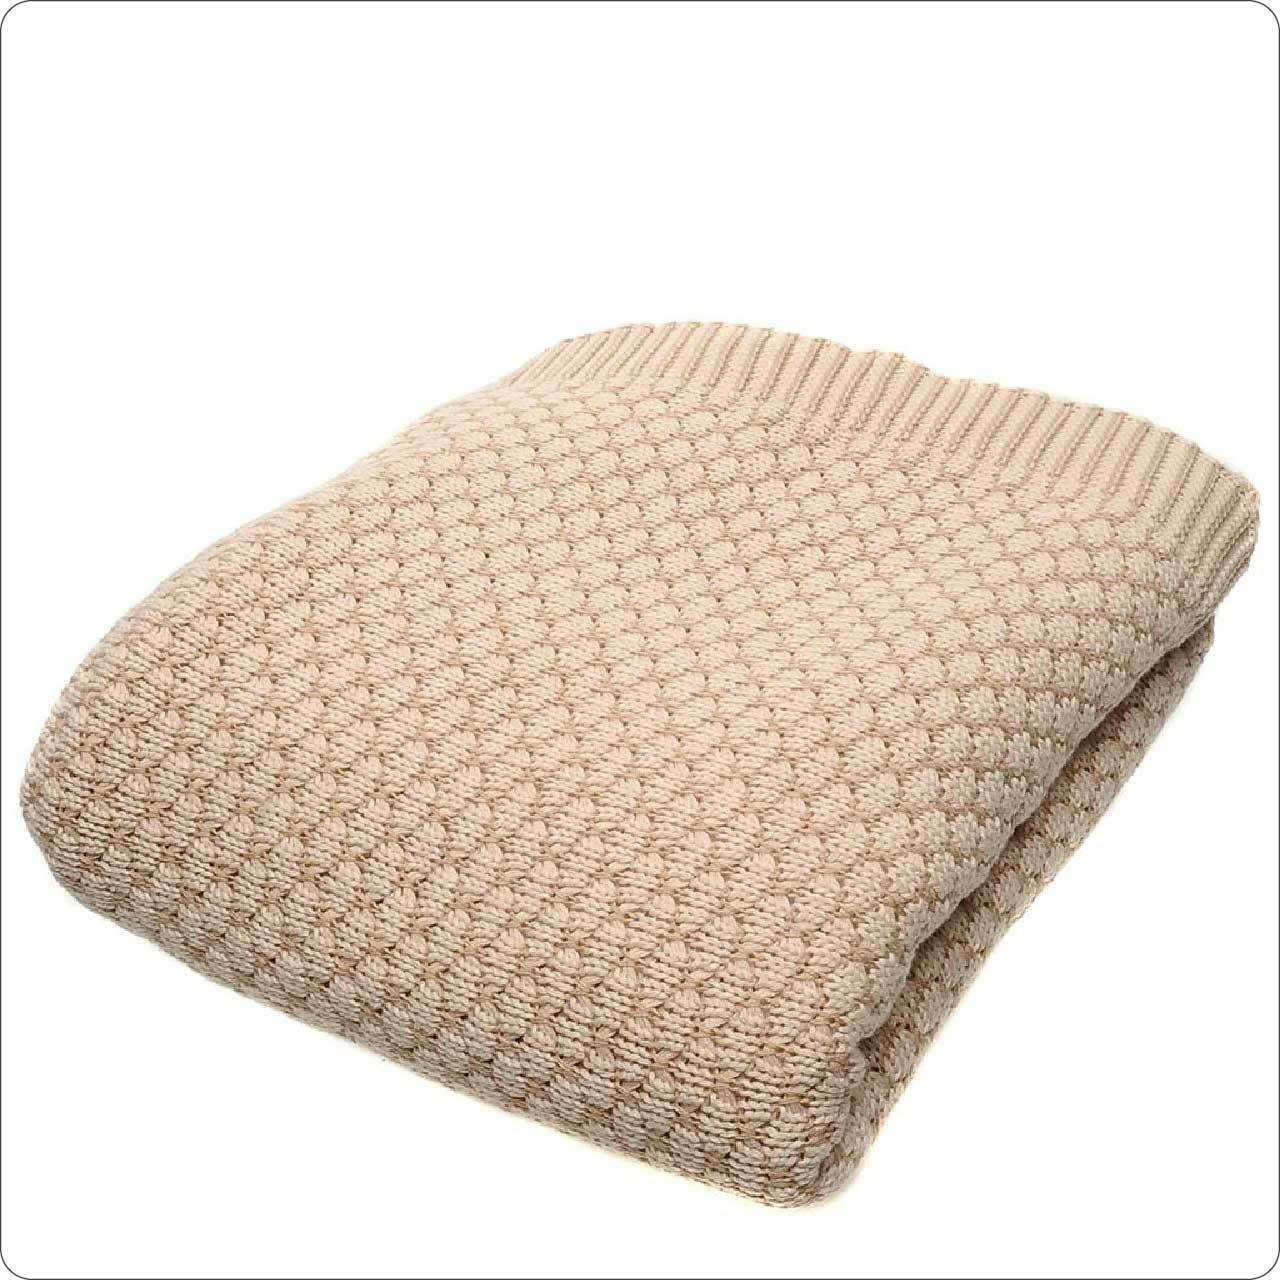 Luxury Cotton Cable Knit Throw 125x150cm Latte